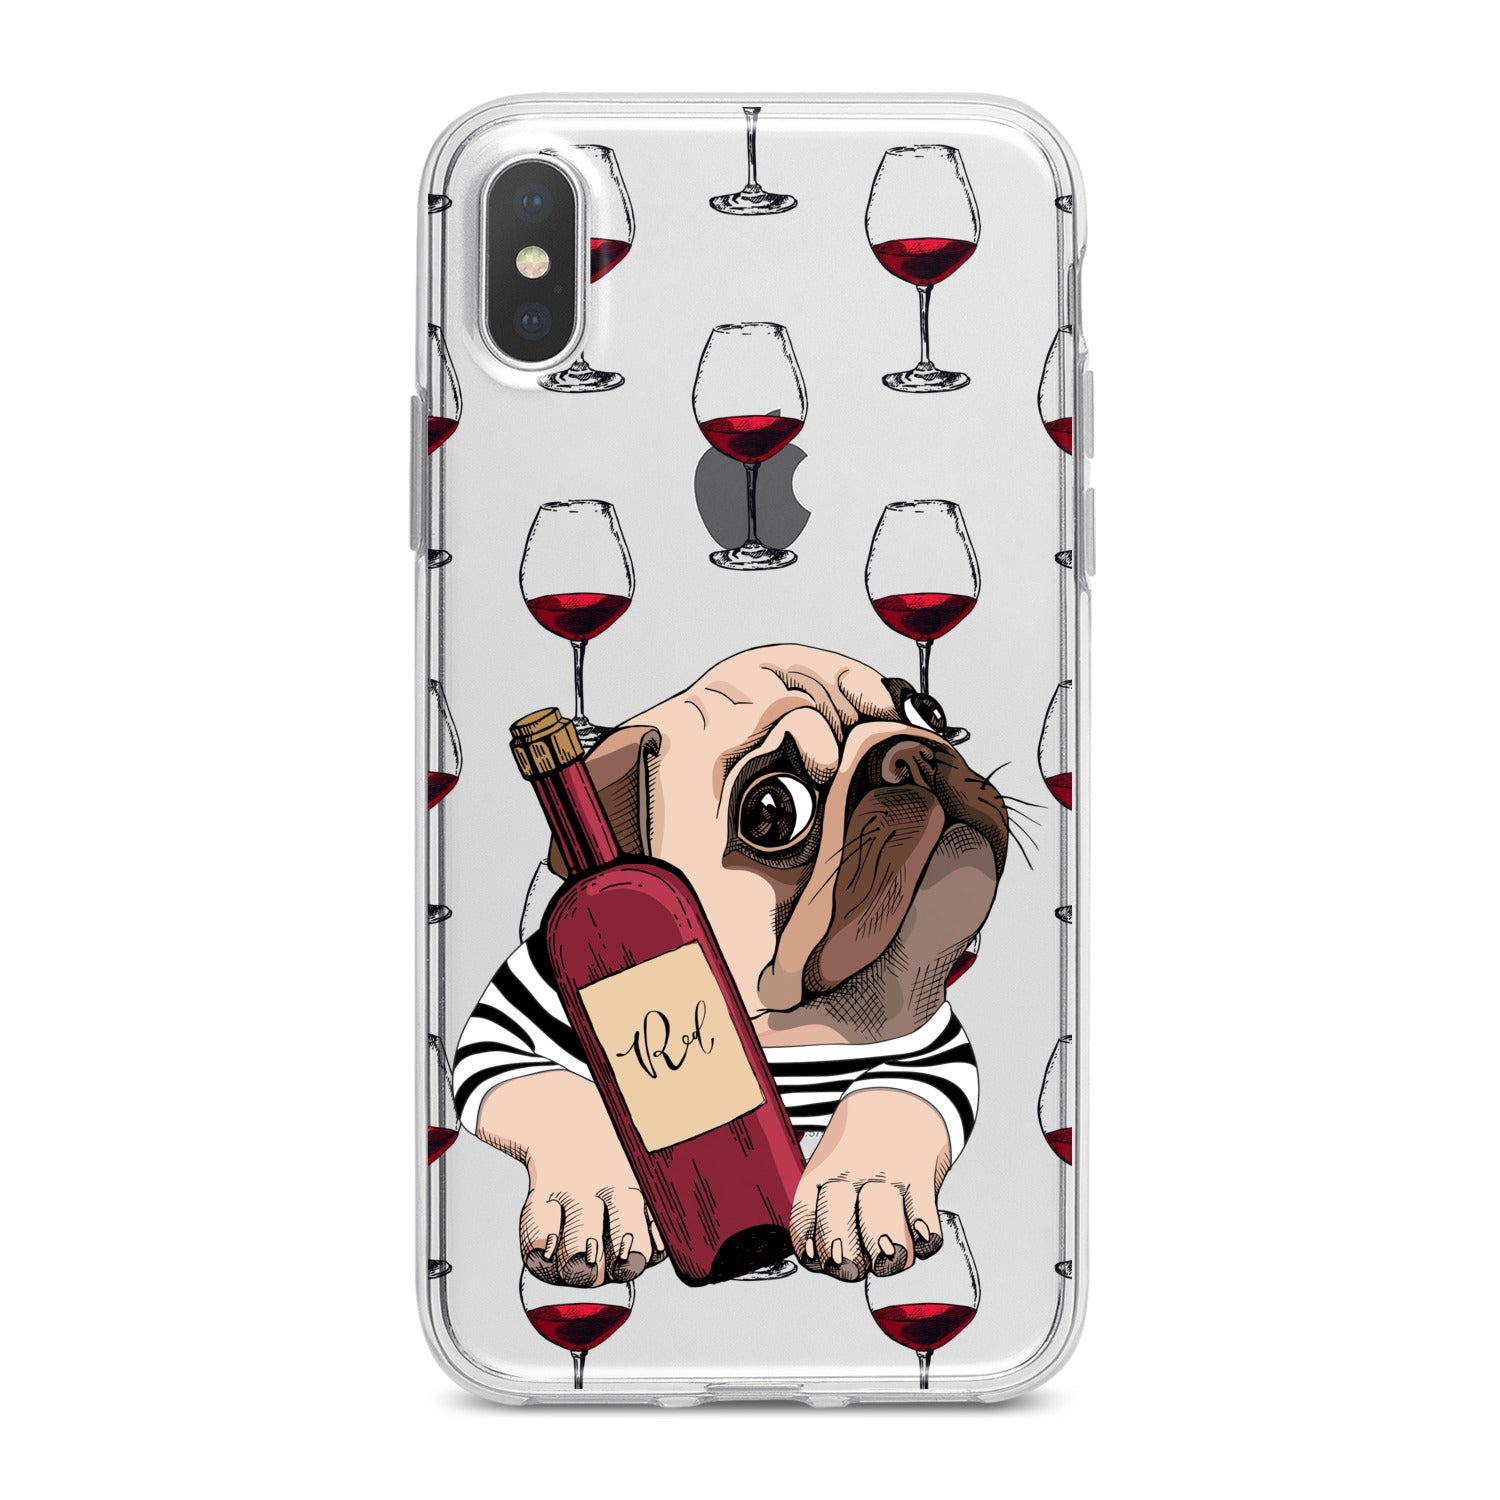 Lex Altern Wine Pug Phone Case for your iPhone & Android phone.